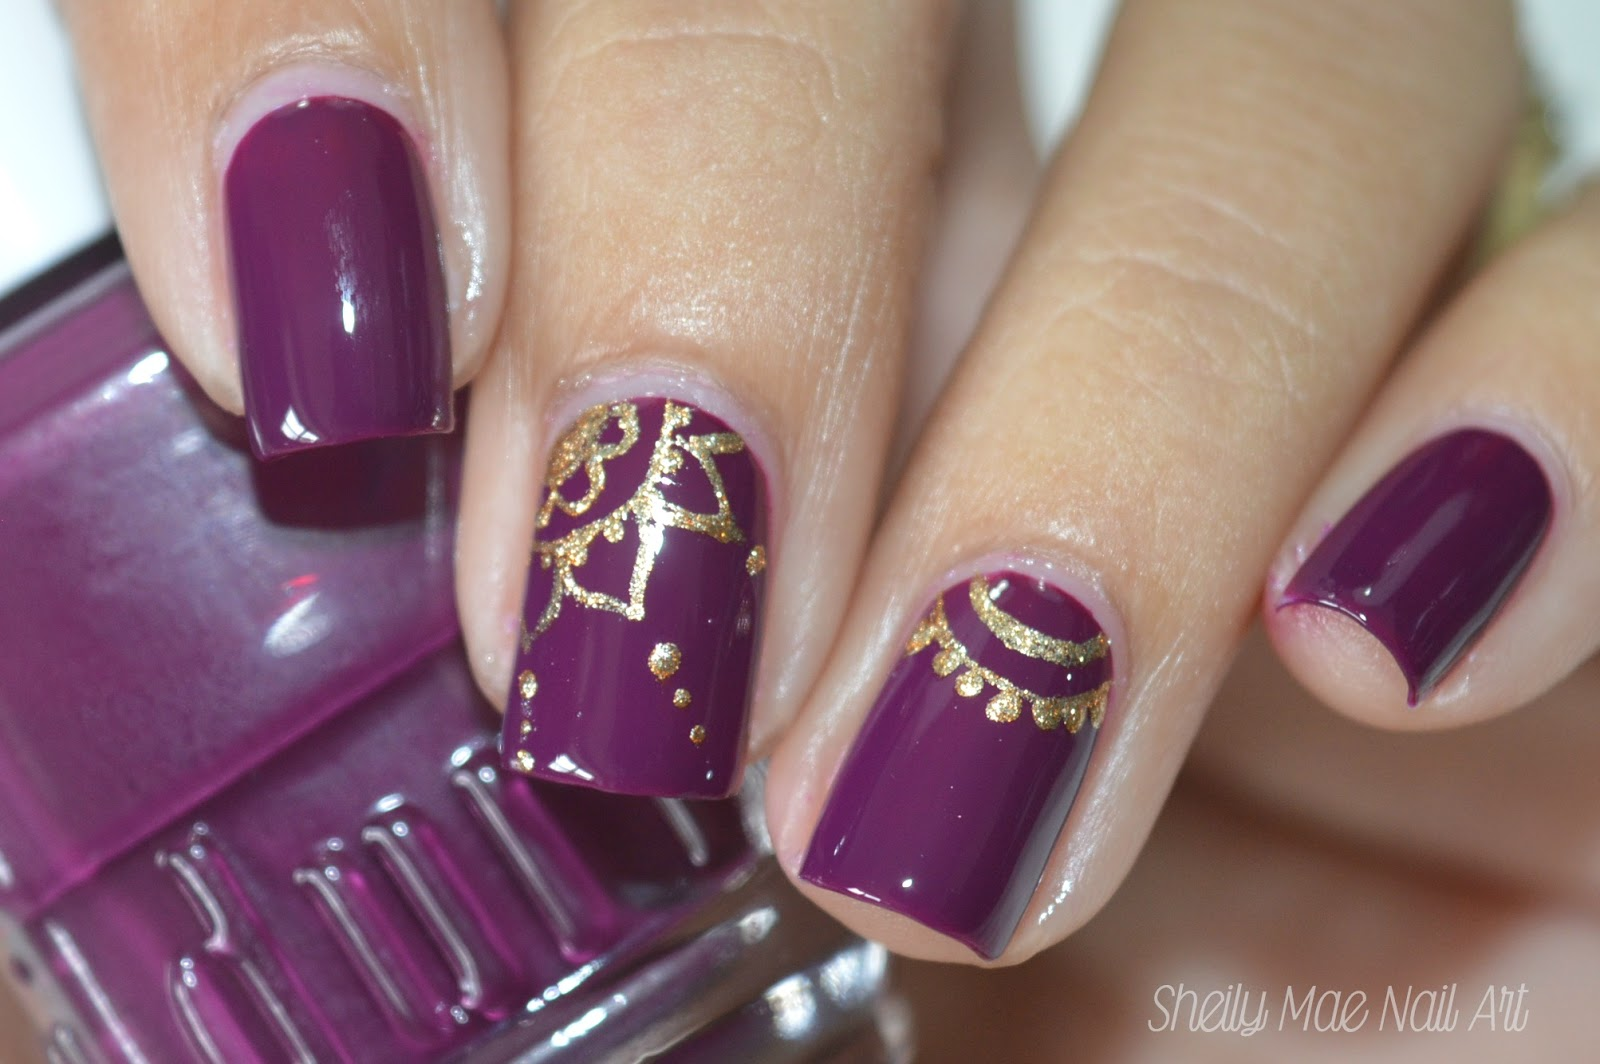 Fall Nail Art using Duri Cosmetics Nail Polishes - Sheily Mae Nail Art